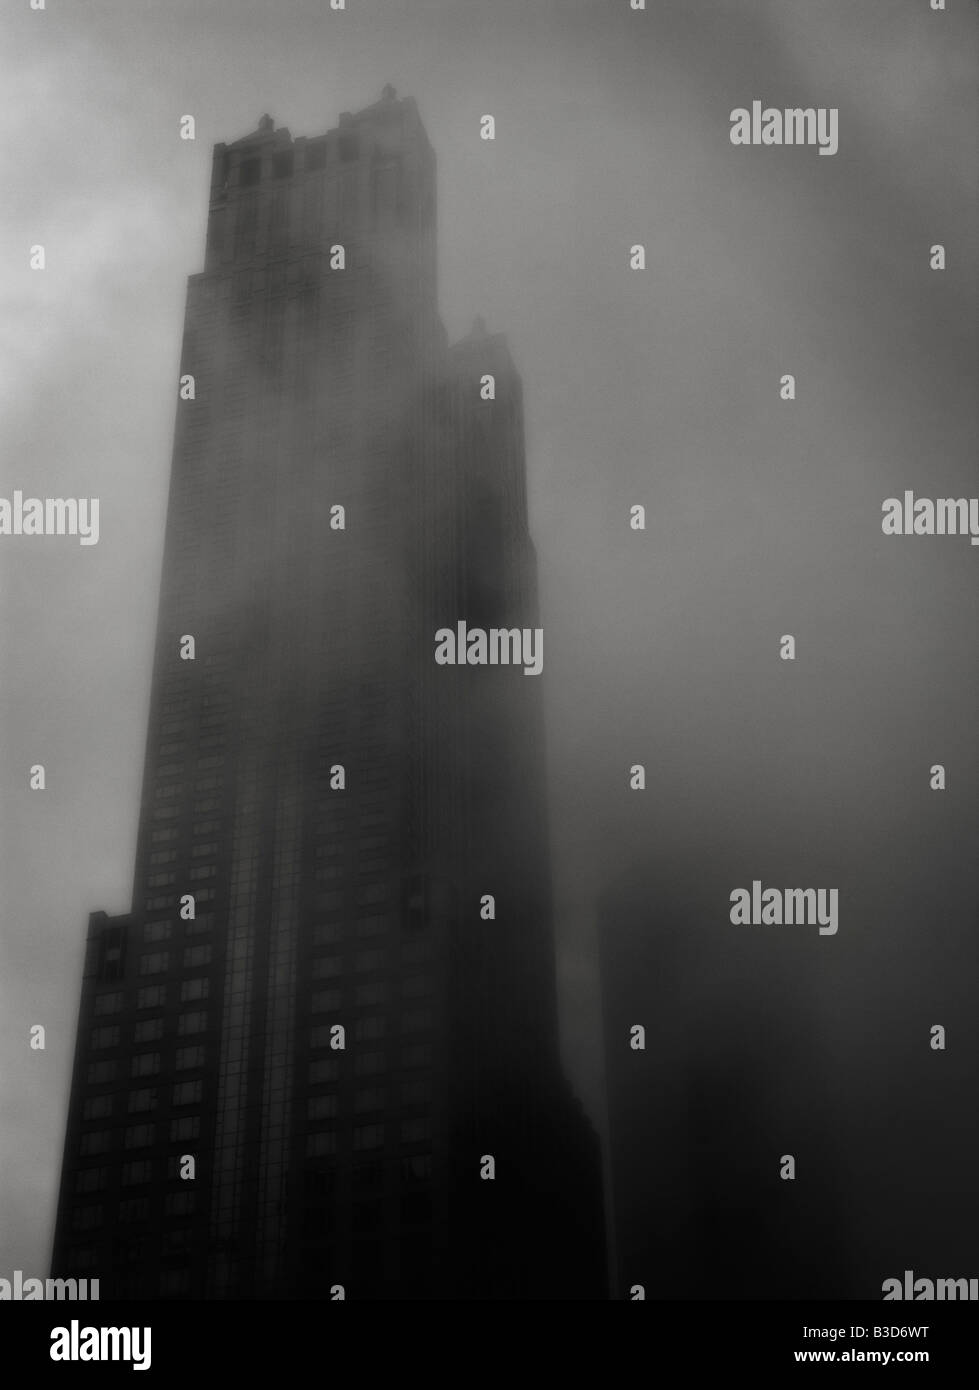 Foggy weather near to the Water Tower Place. North of The Magnificent Mile (North Michigan Avenue). Chicago. Illinois. - Stock Image